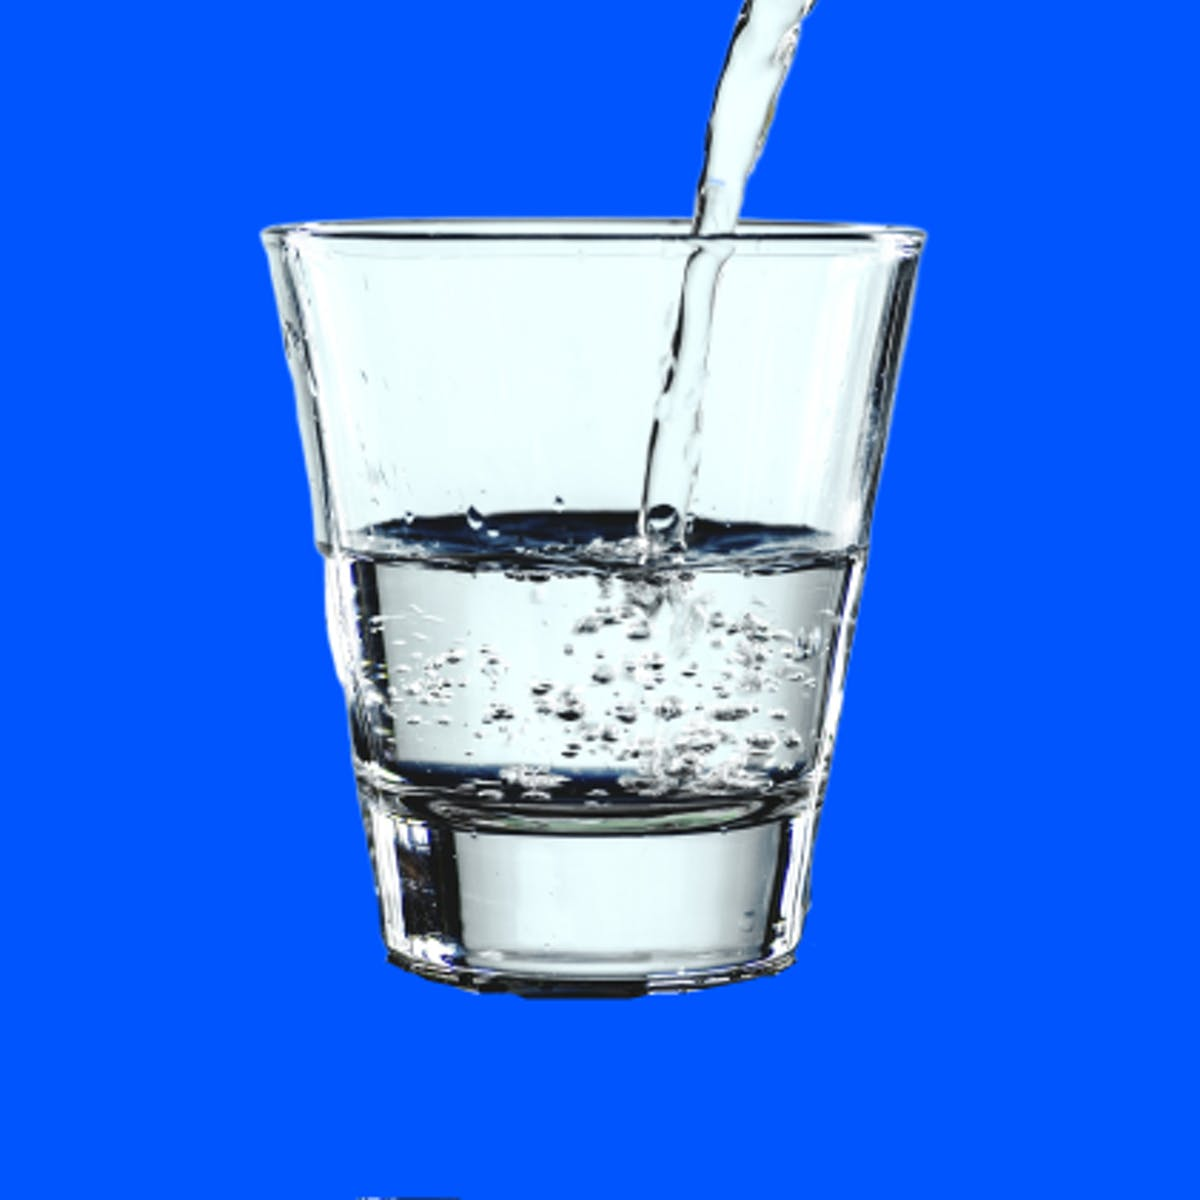 Chilling Data Shows Americans Drink 209M Glasses of Unsafe Water Every Day